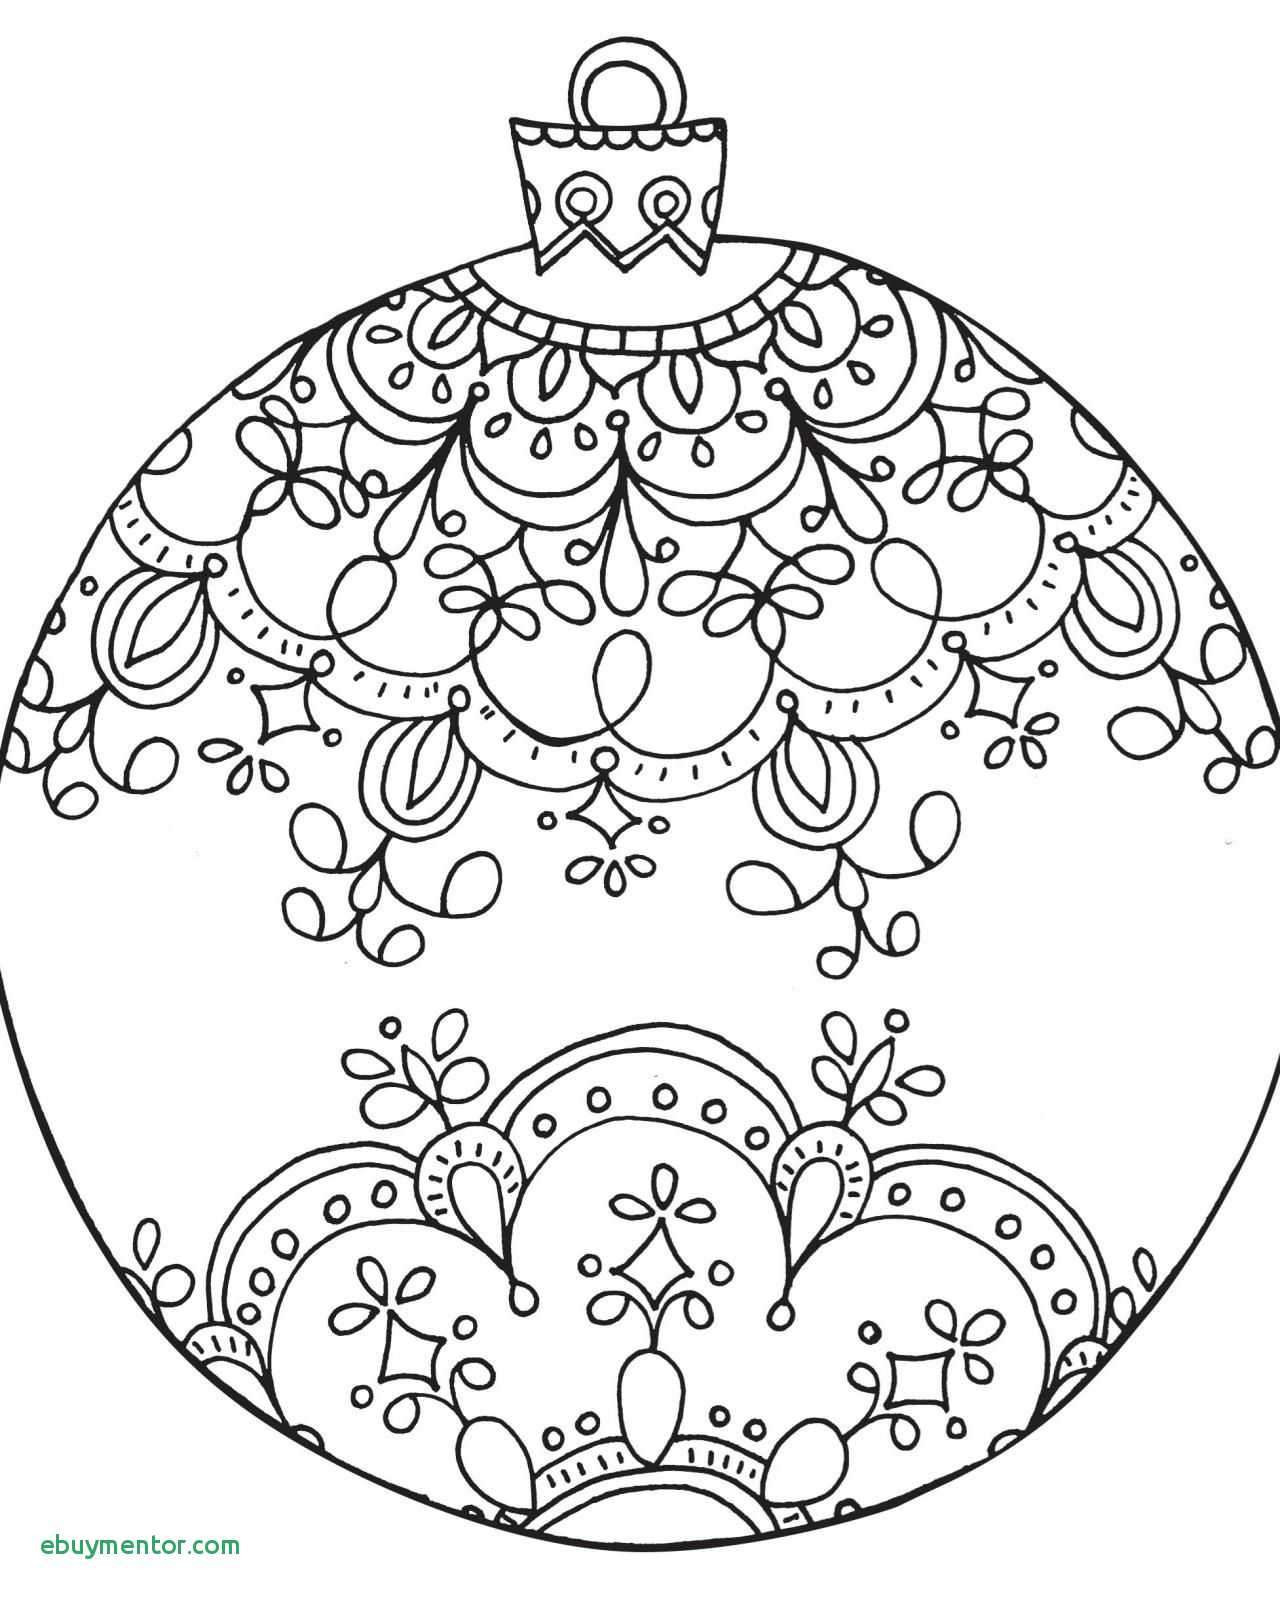 Christmas Colouring Pages Decorations With Printable Coloring Page For Kids